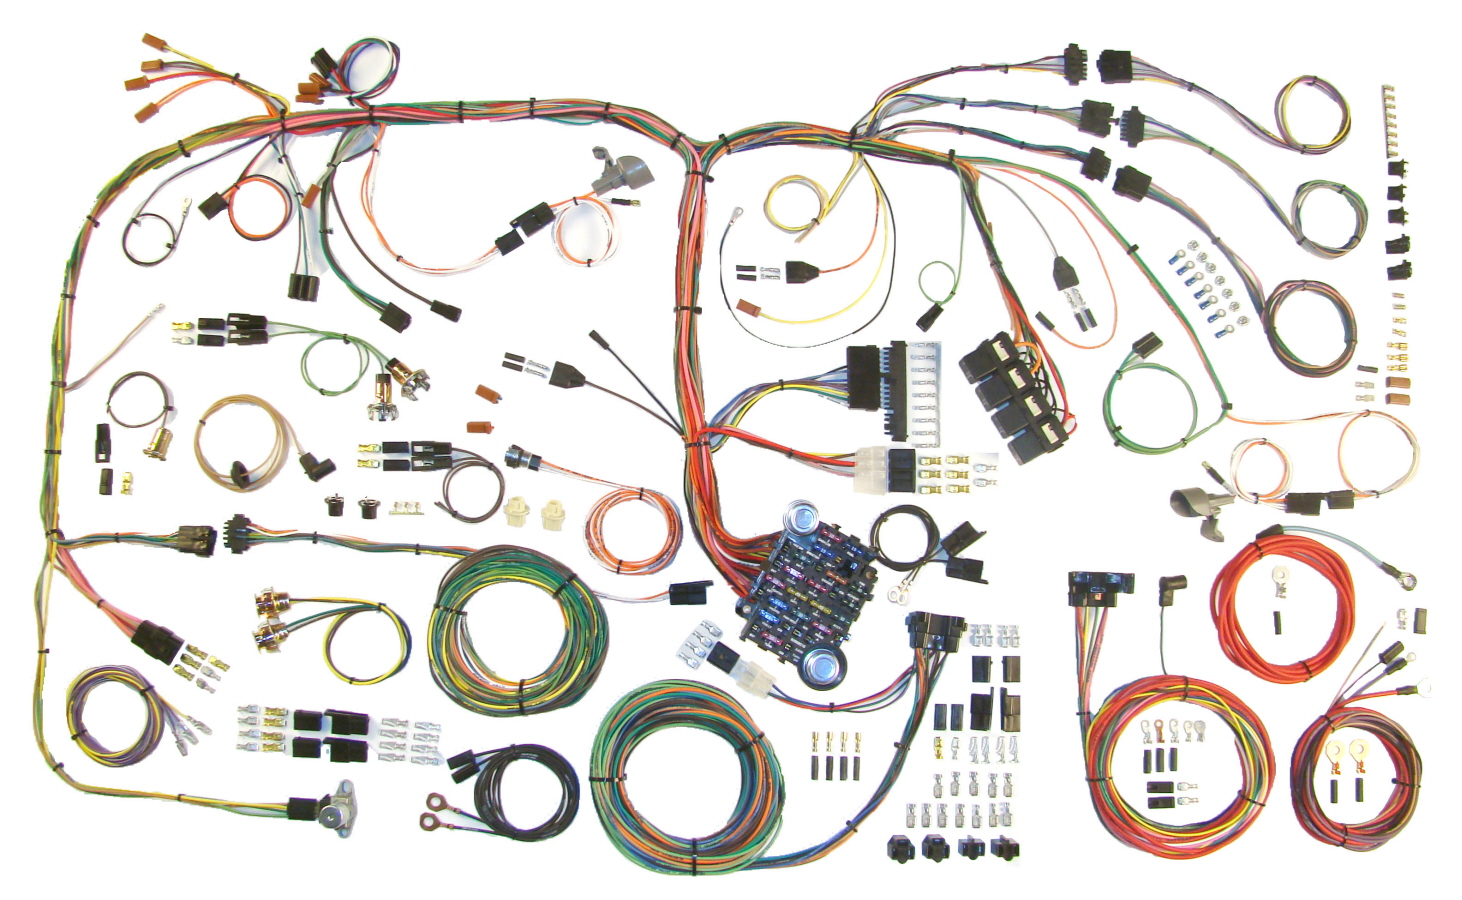 l_510289 70 74 mopar e body classic update wiring harness 510289  at gsmx.co